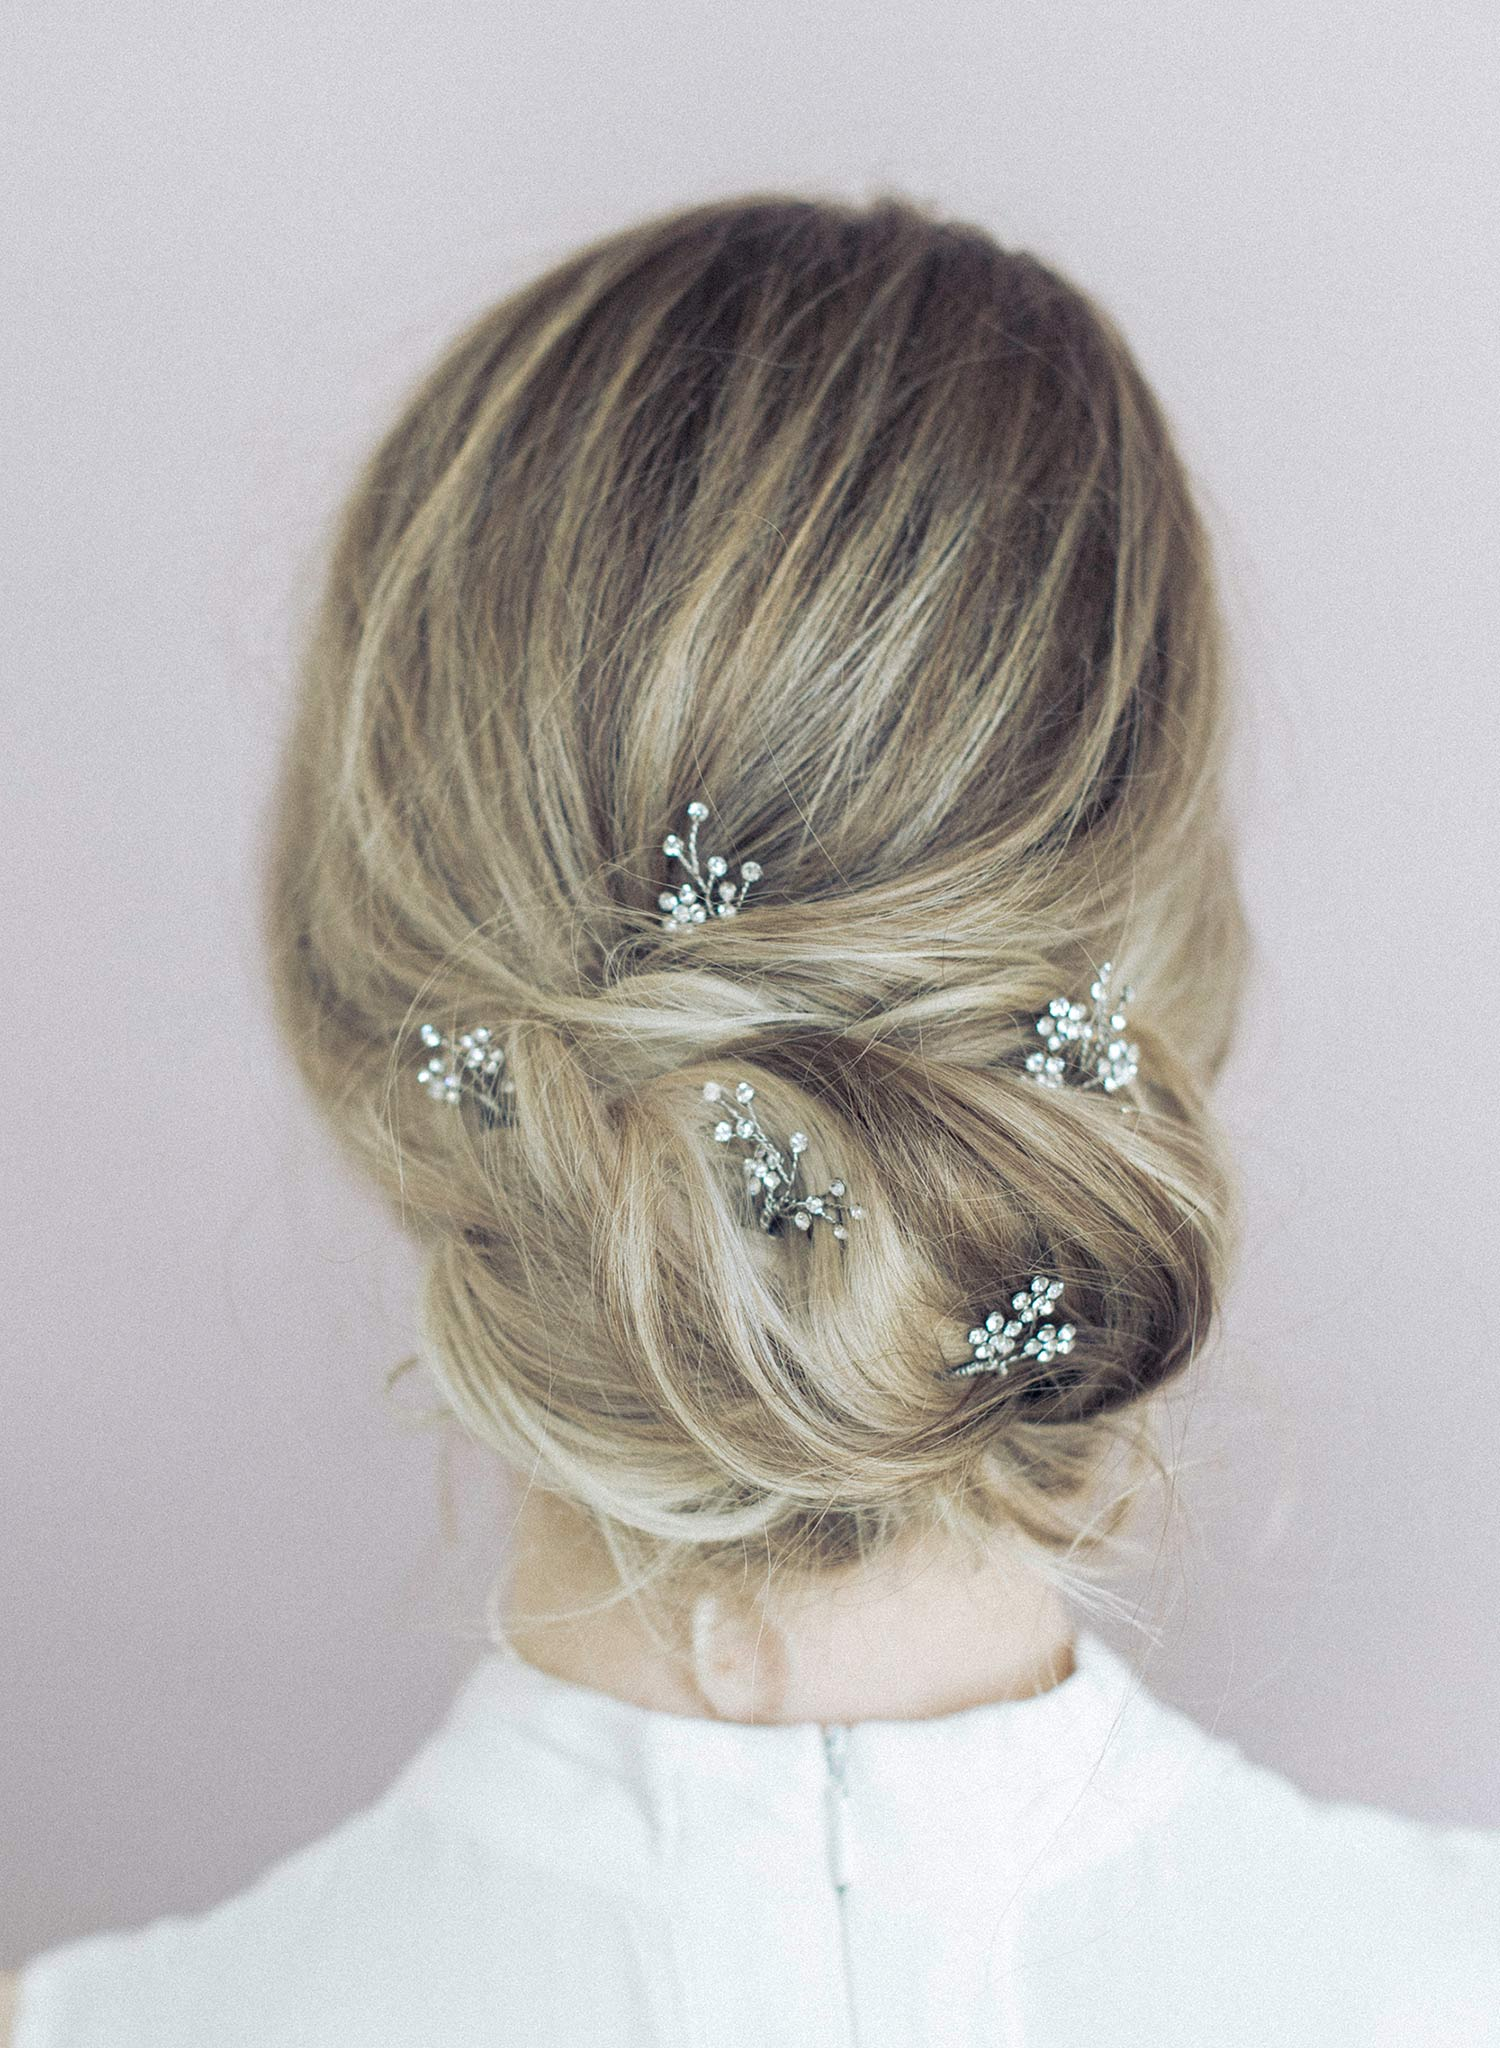 Dainty rhinestone blossom hair pin set of 5 - Style #904